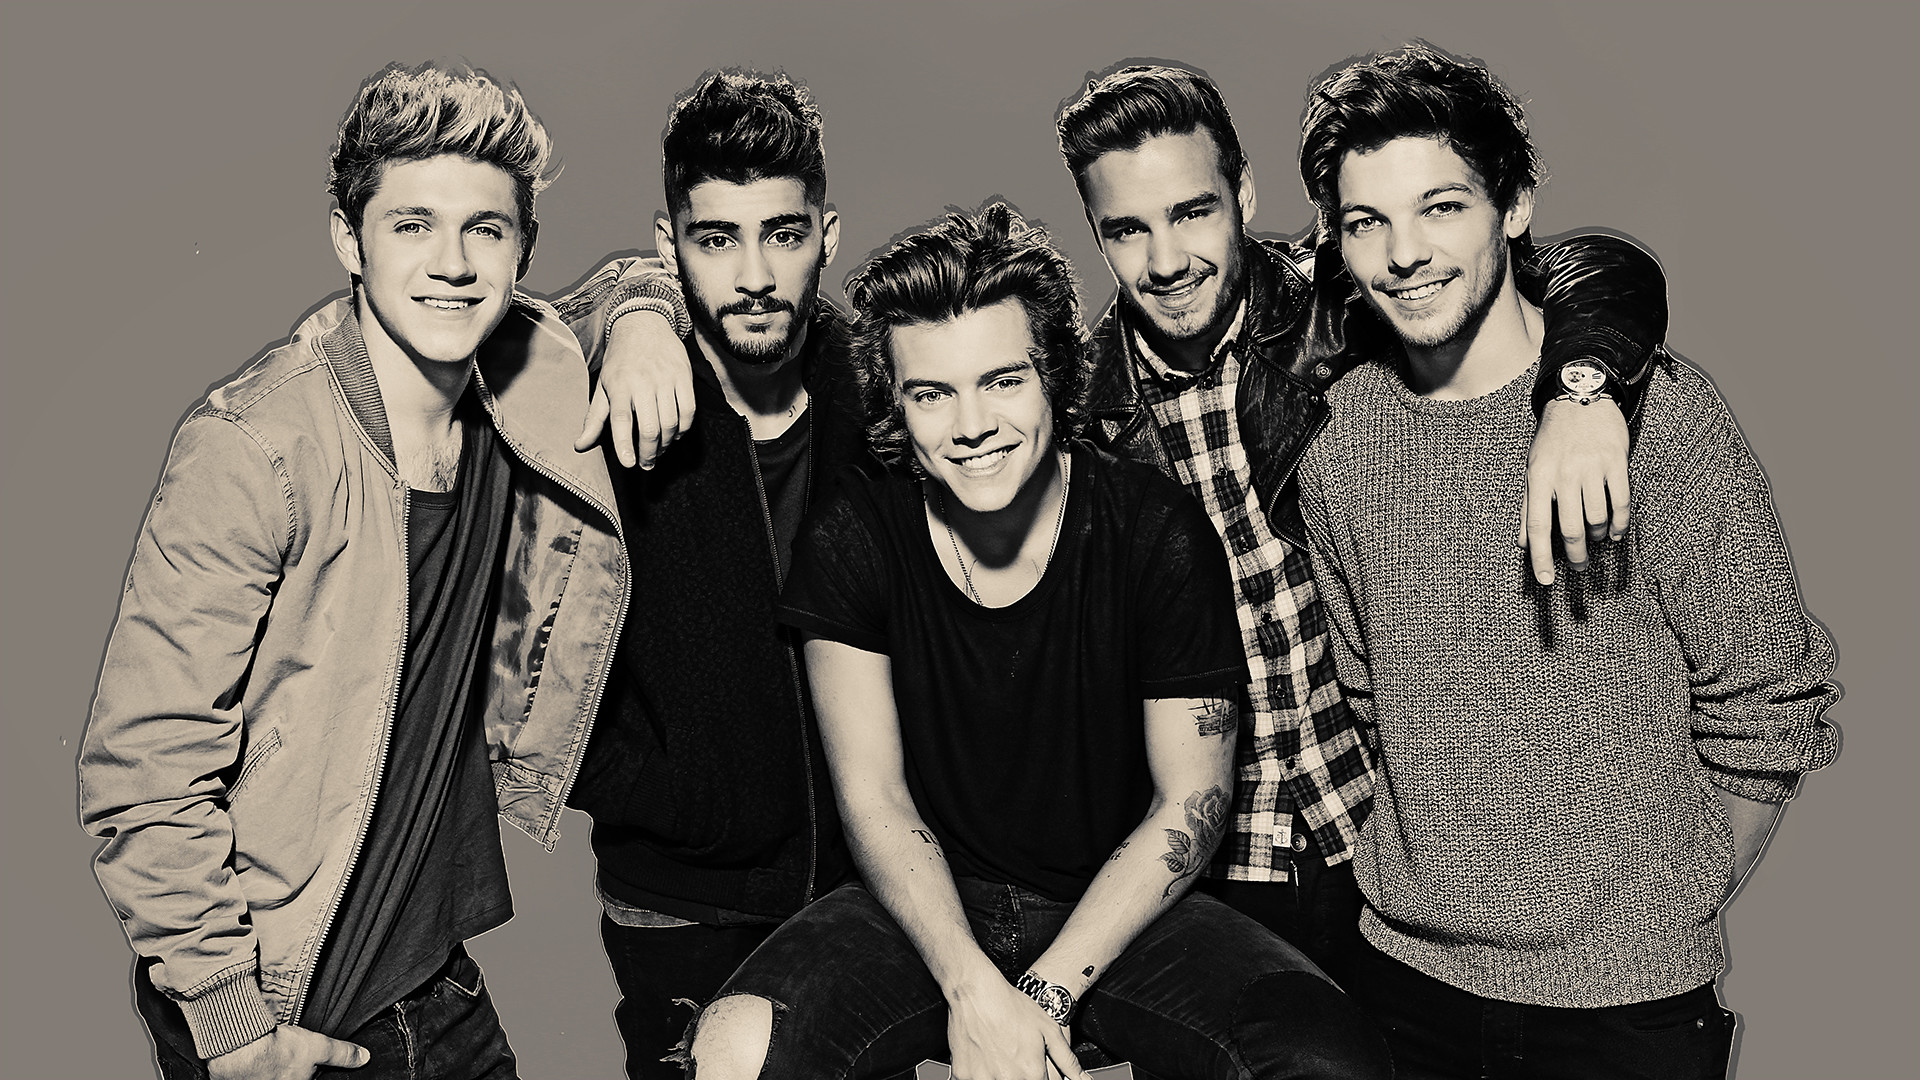 1920x1080 Black and white One Direction Wallpapers HD.